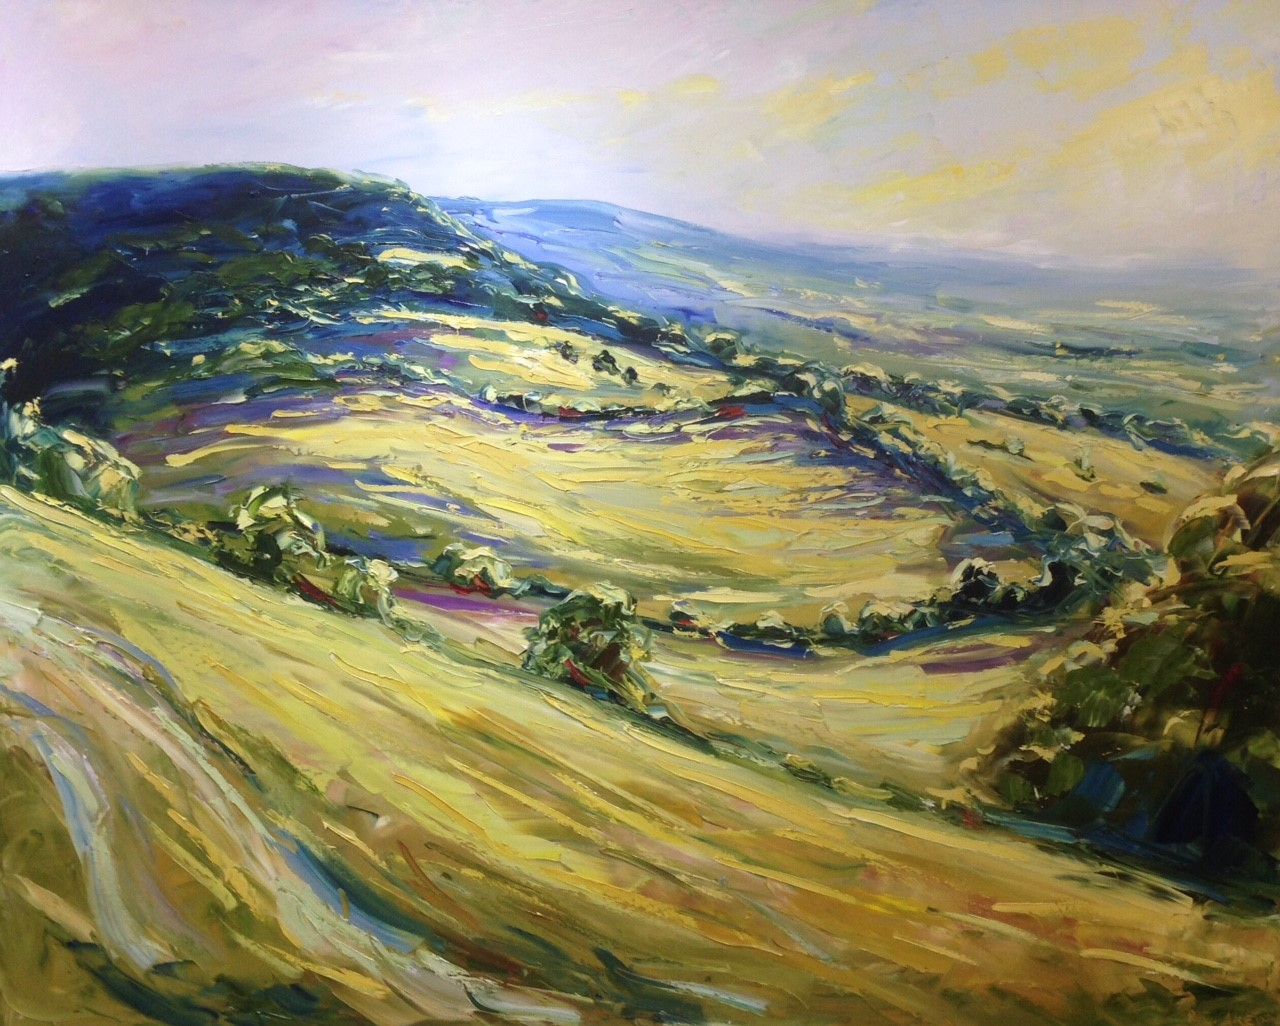 'Cotswold' An exhibition of paintings by Rupert Aker